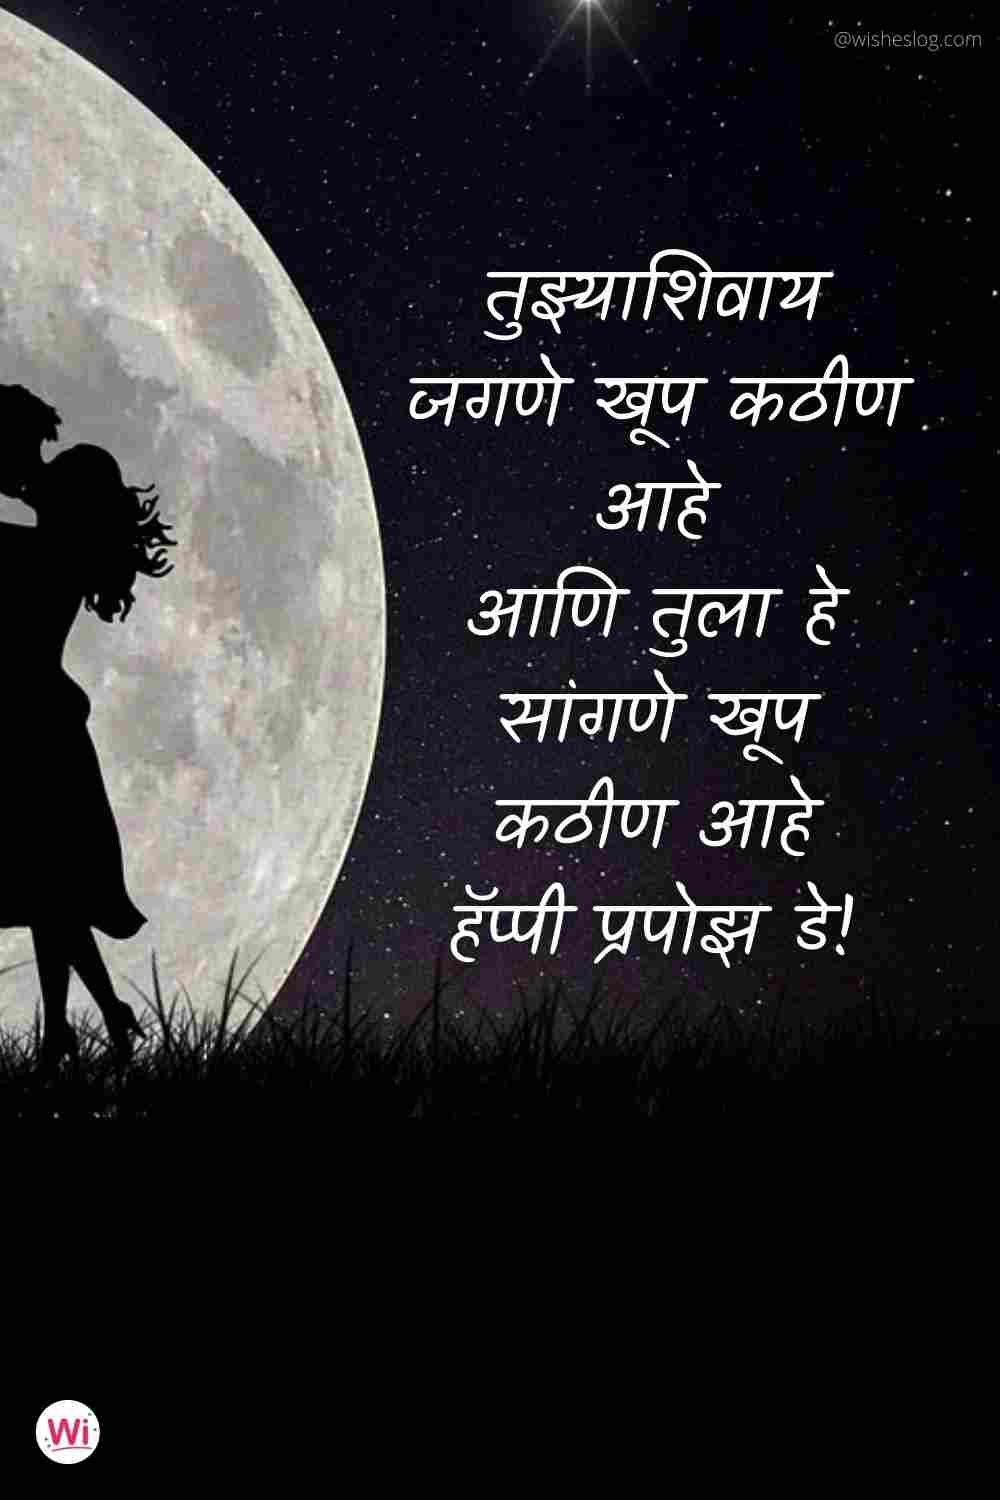 happy propose day in marathi